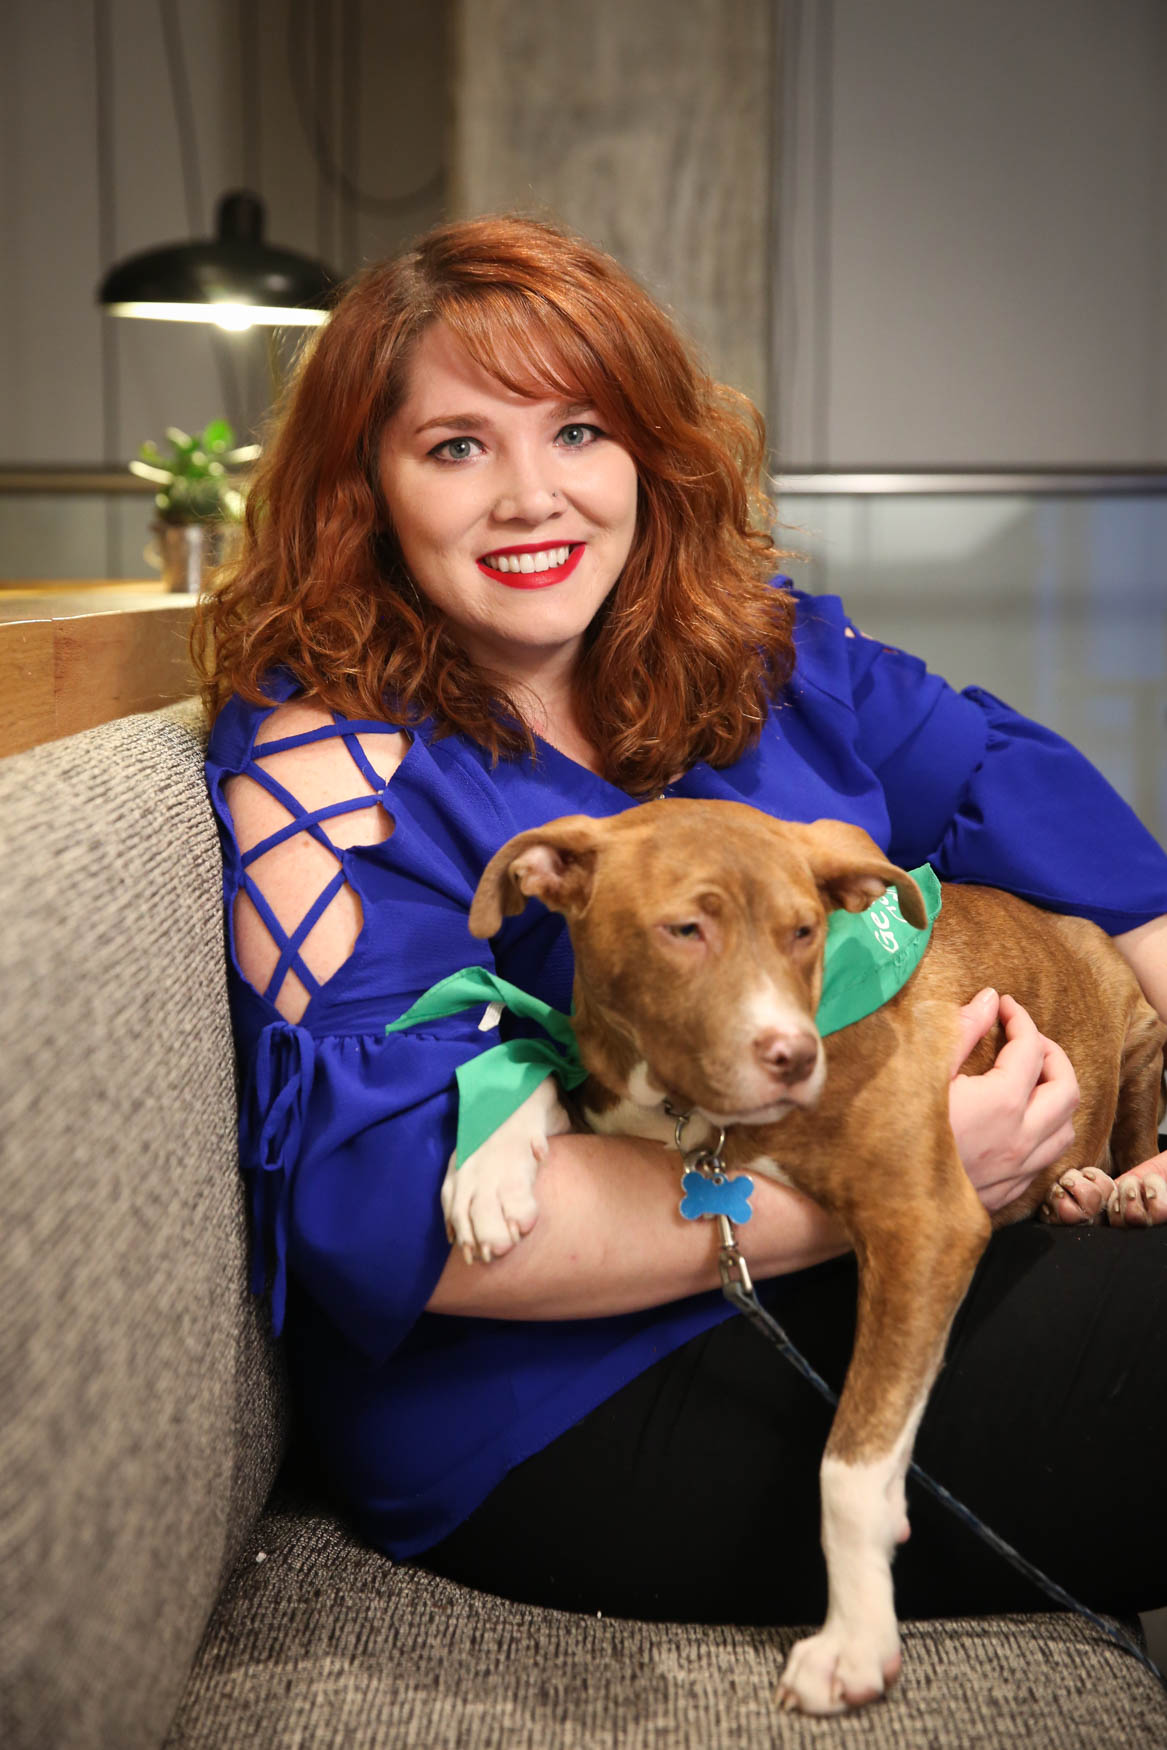 Meet Uncle and Sydney, a 5-month-old Terrier mix and a 29-year-old human respectively. Photo location: Moxy Washington, D.C. Downtown (Image: Amanda Andrade-Rhoades/ DC Refined)